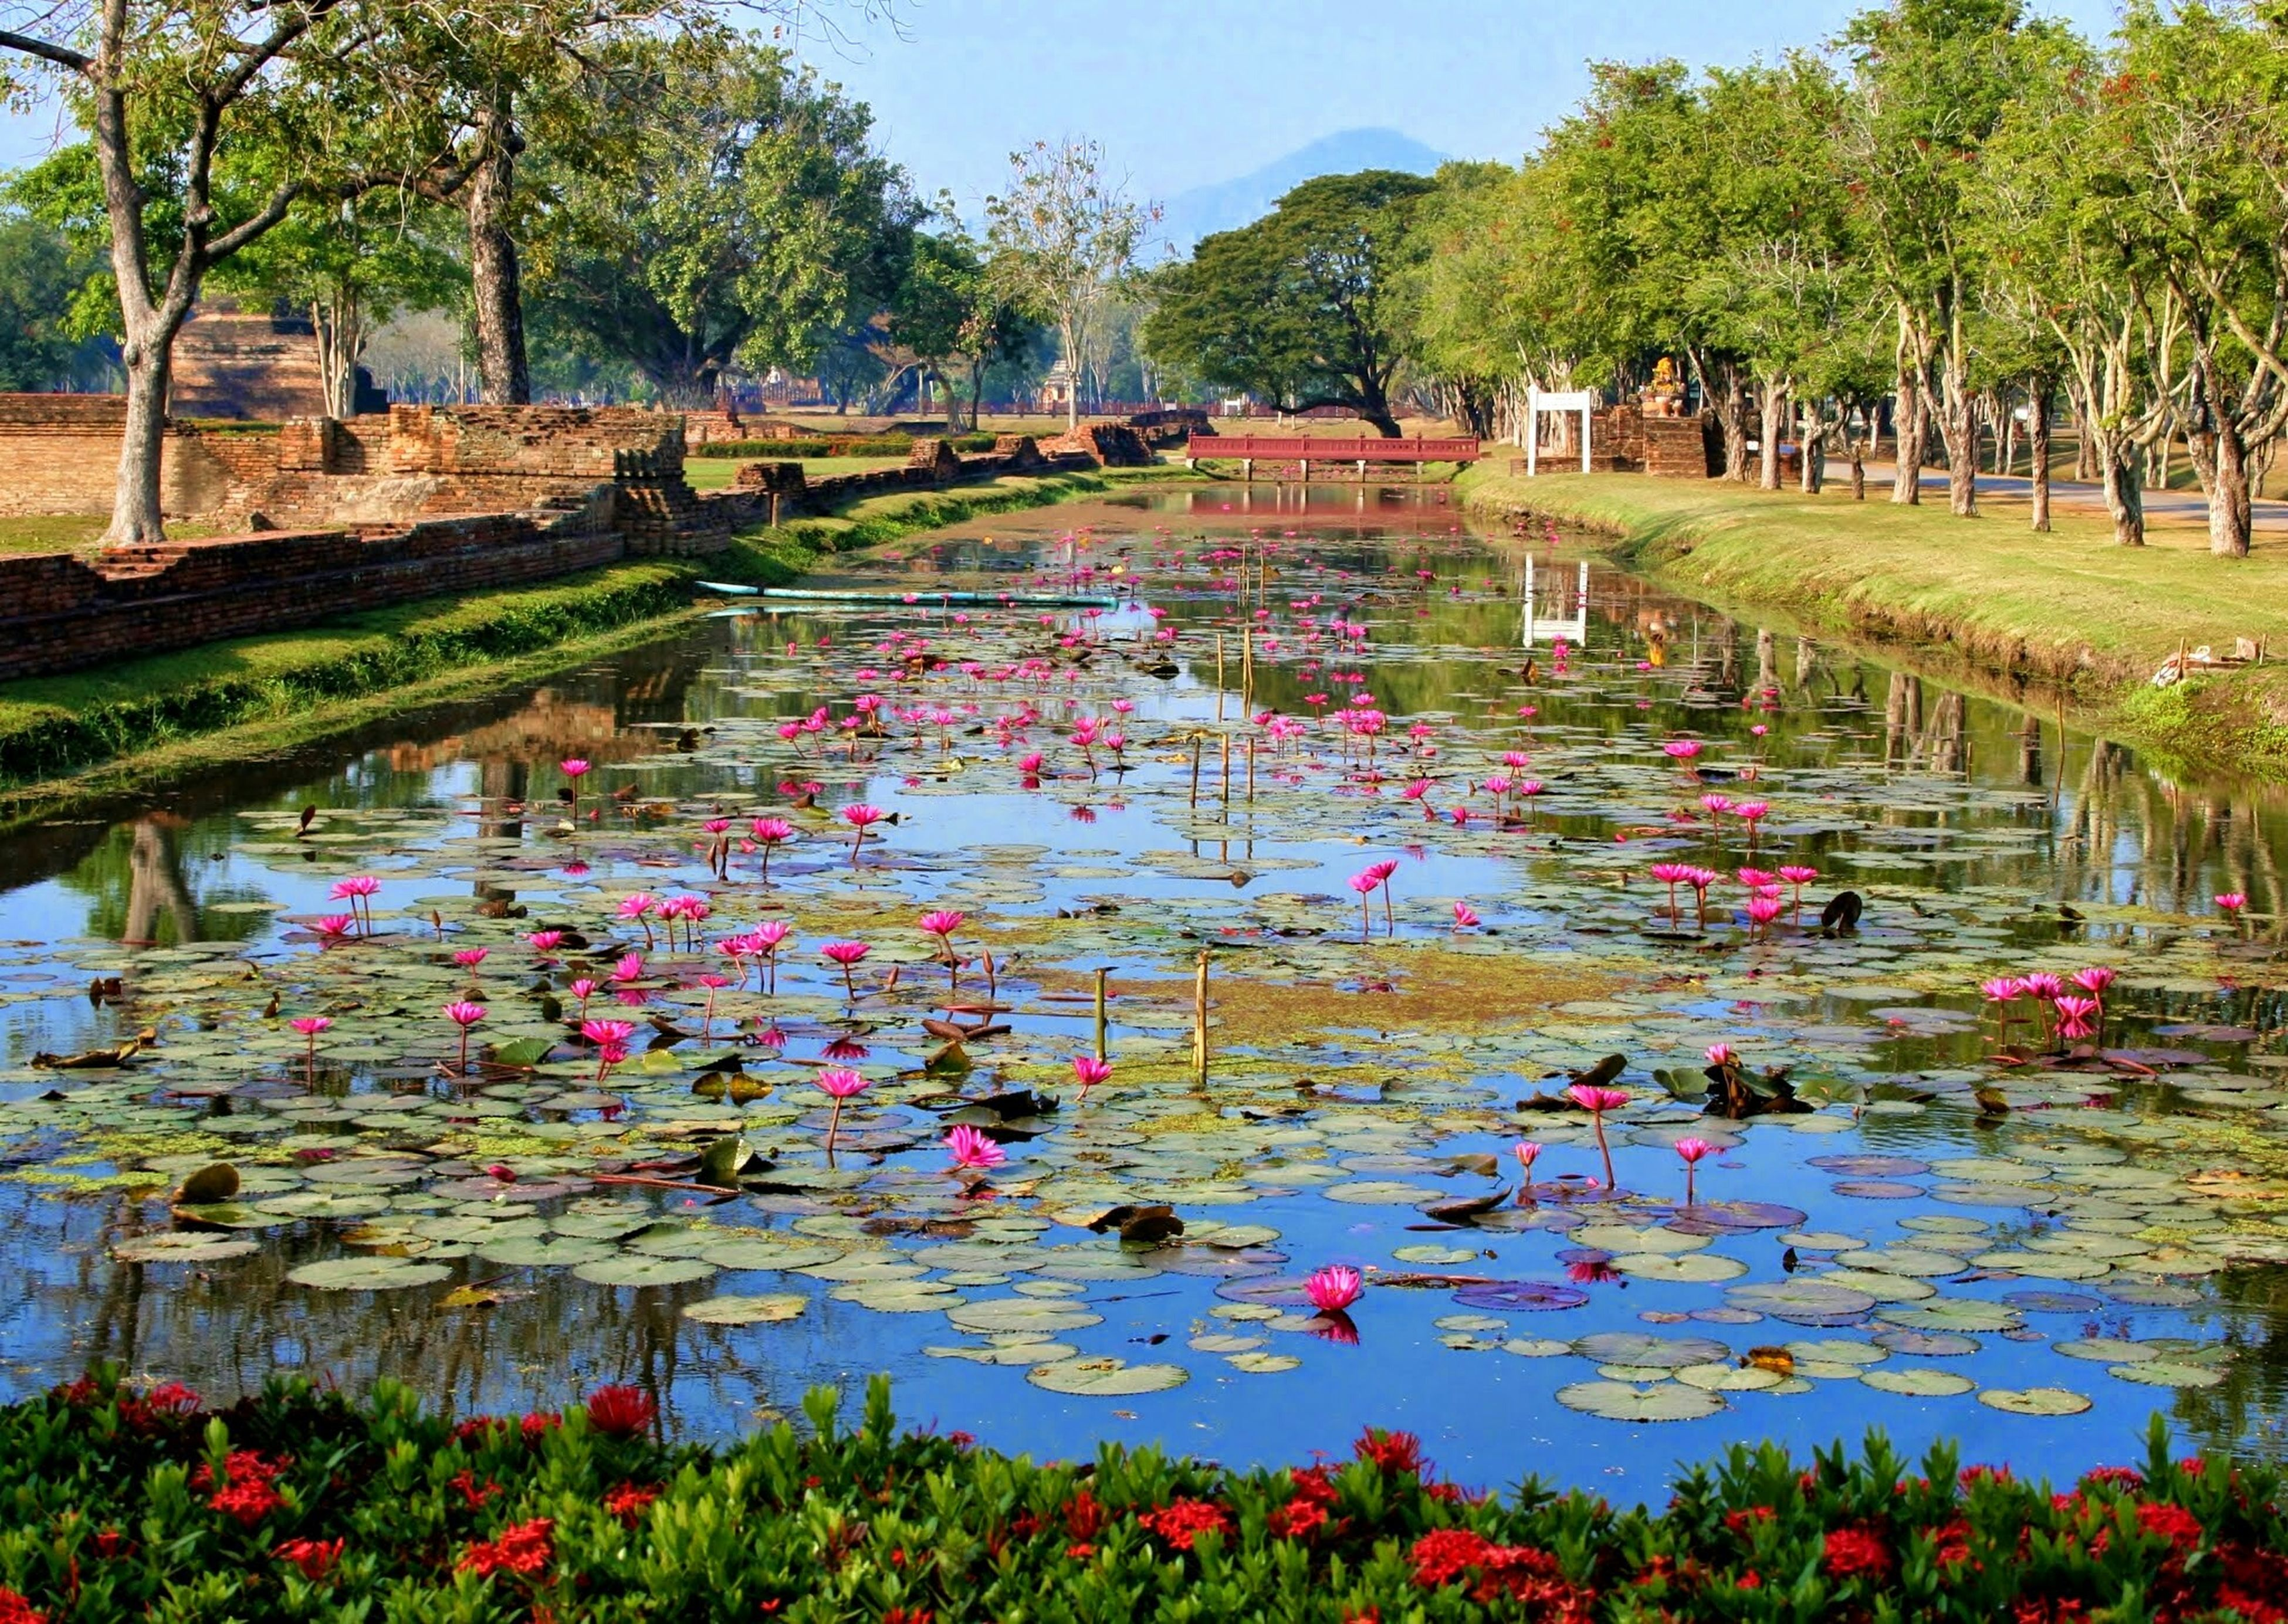 water, tree, growth, reflection, flower, beauty in nature, lake, pond, nature, tranquility, multi colored, plant, park - man made space, green color, tranquil scene, scenics, day, water lily, waterfront, outdoors